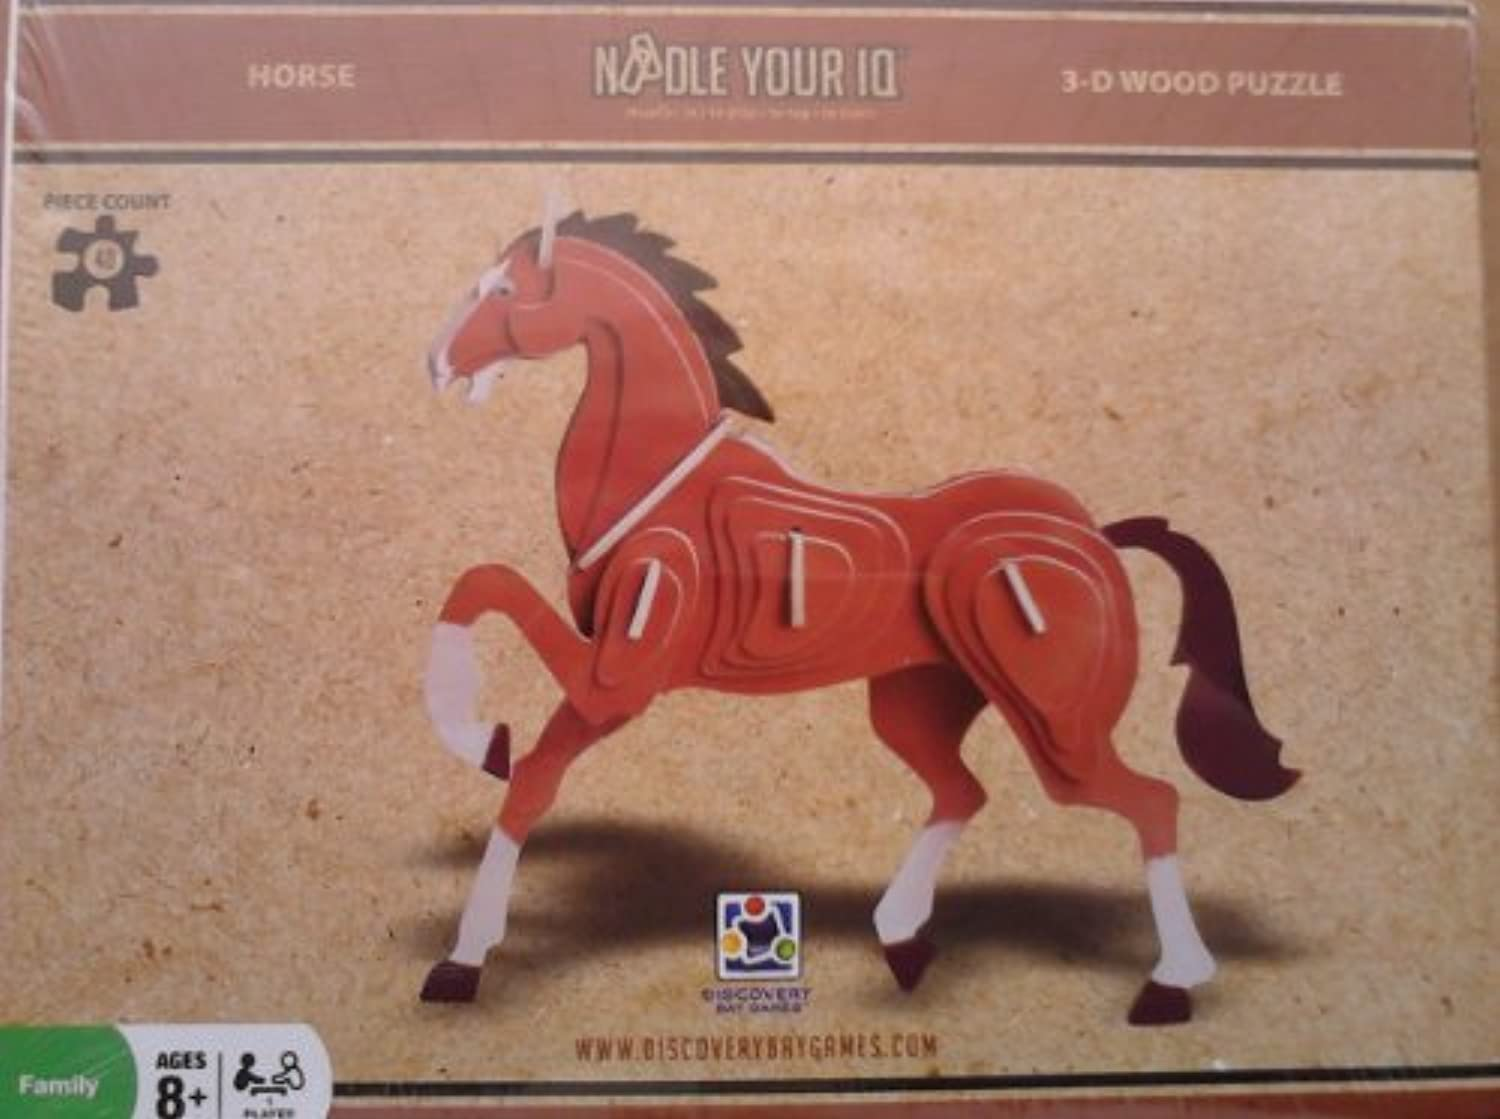 Noodle Your Iq 3d Wooden colord Horse by Noodle Your IQ